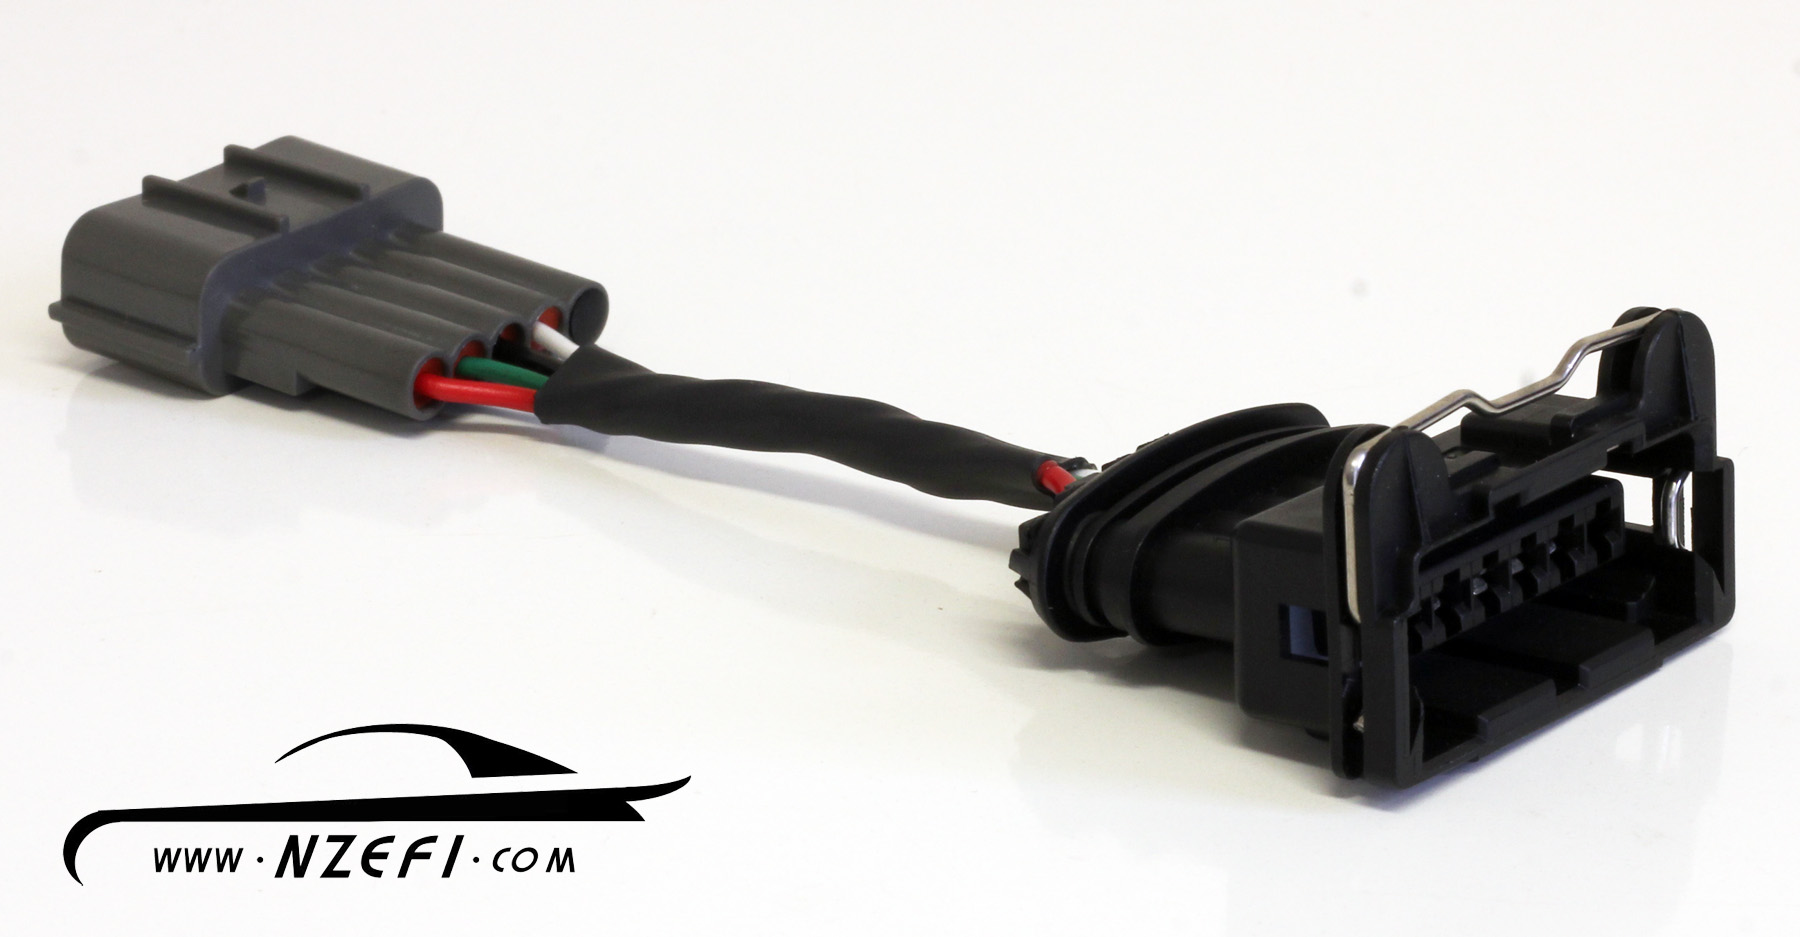 Nissan Afm Adapter Harness R R S And Gtr To Z on Sr20det Z32 Maf Wiring